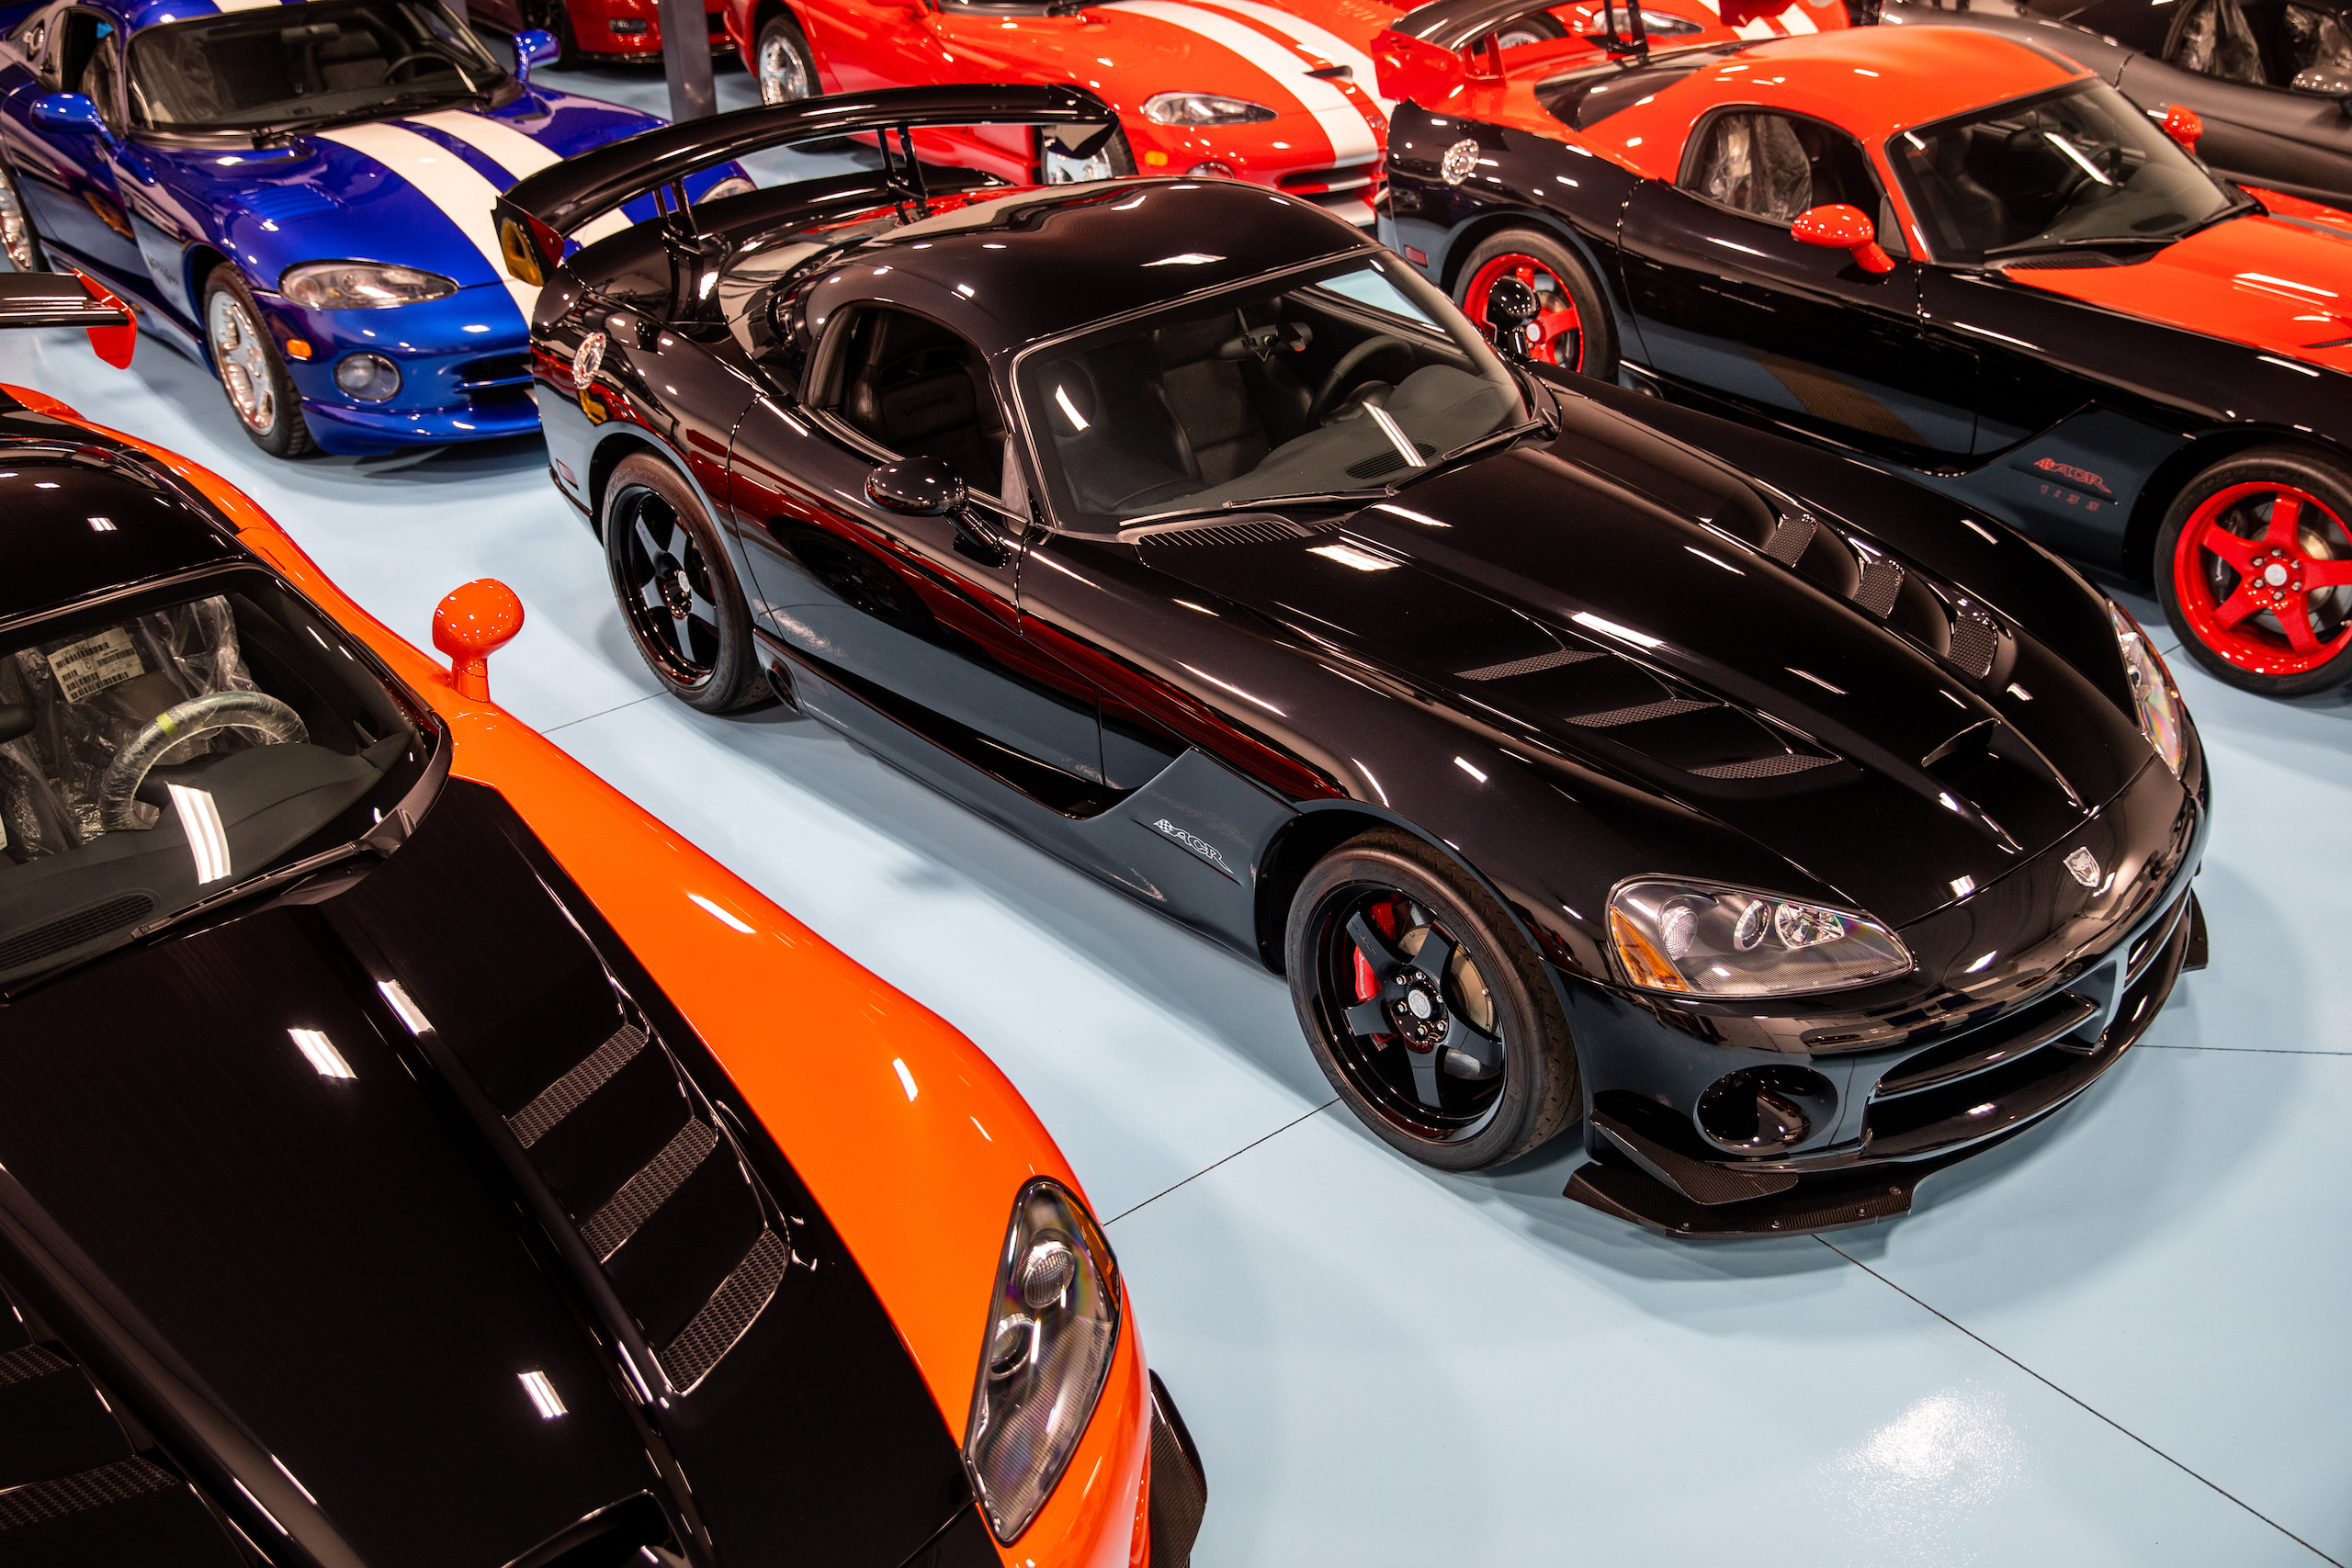 Viper collection